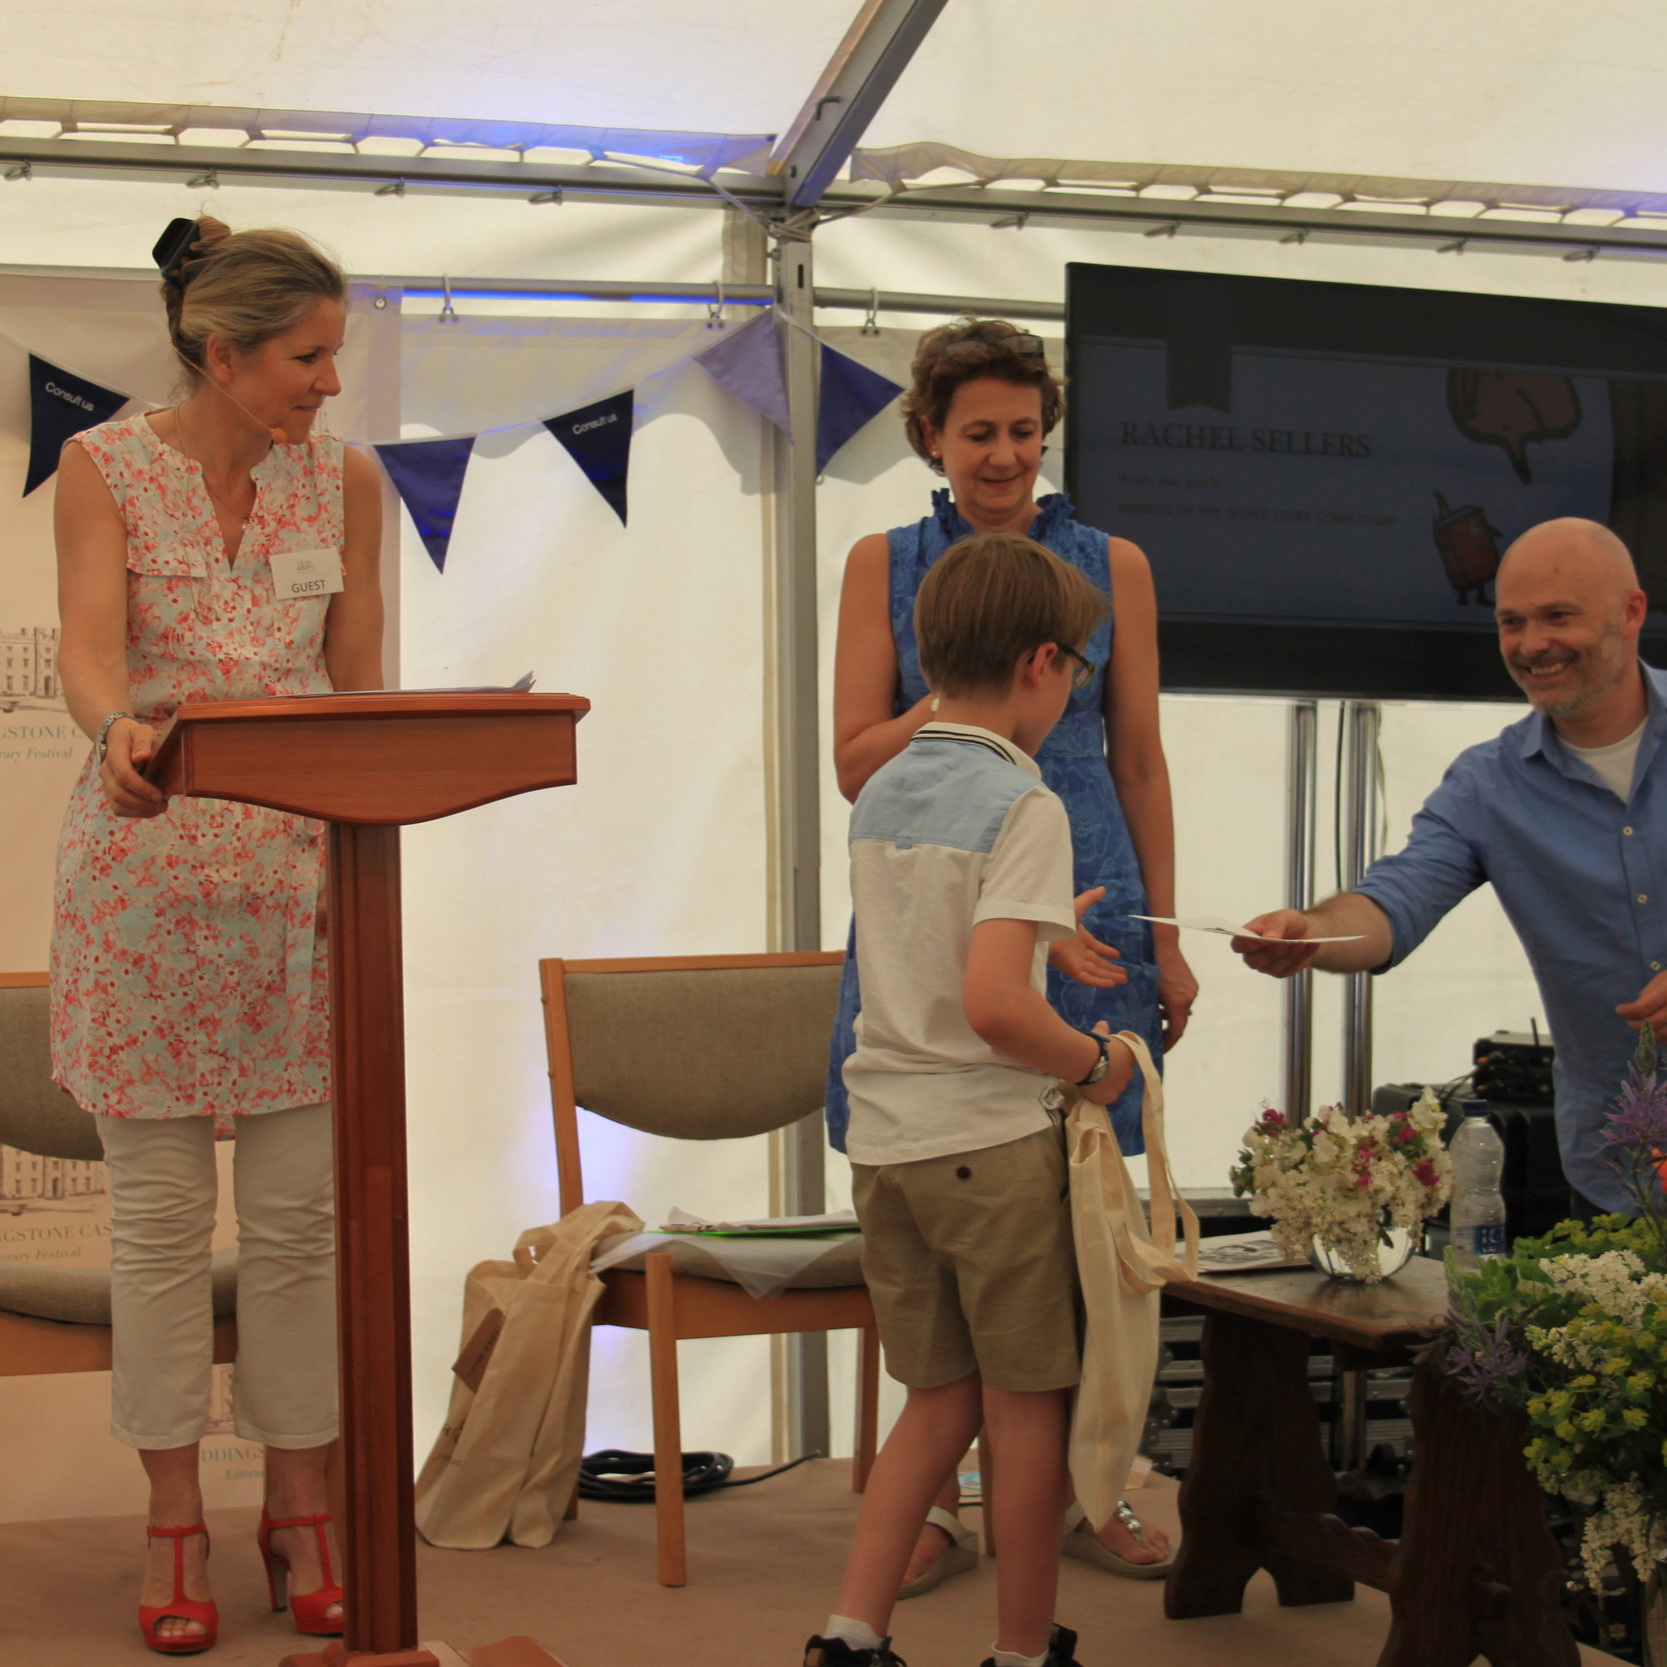 'And the winner is……' Castle Literary Festival, 500 words short story writing competition